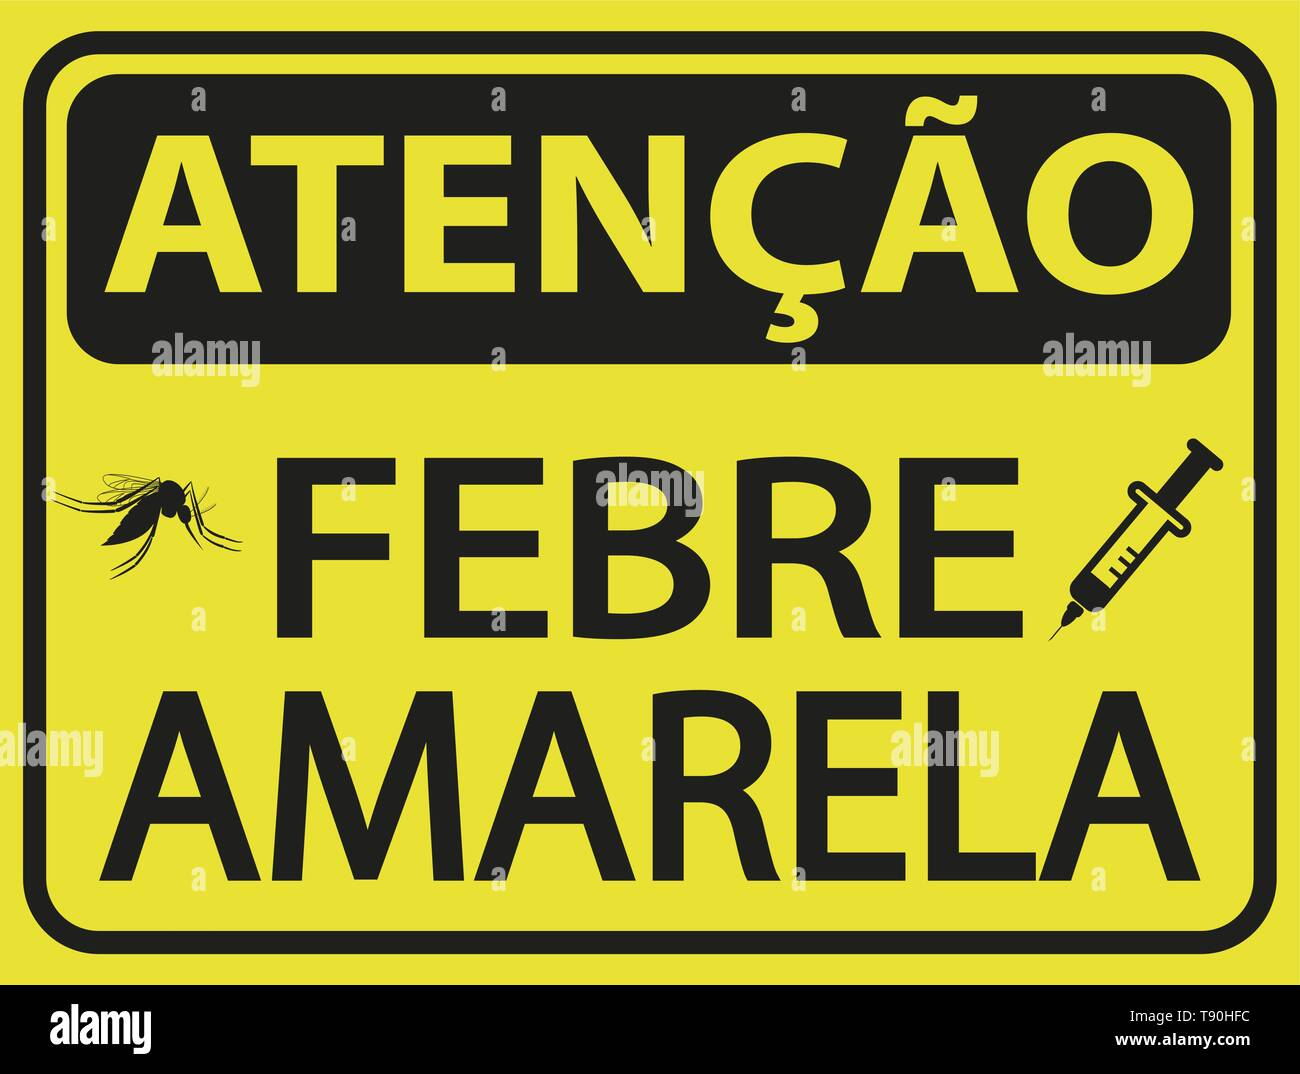 Atencao Febre Amarela - translation Caution Yellow Fever in portuguese language. Vector. Stock Vector